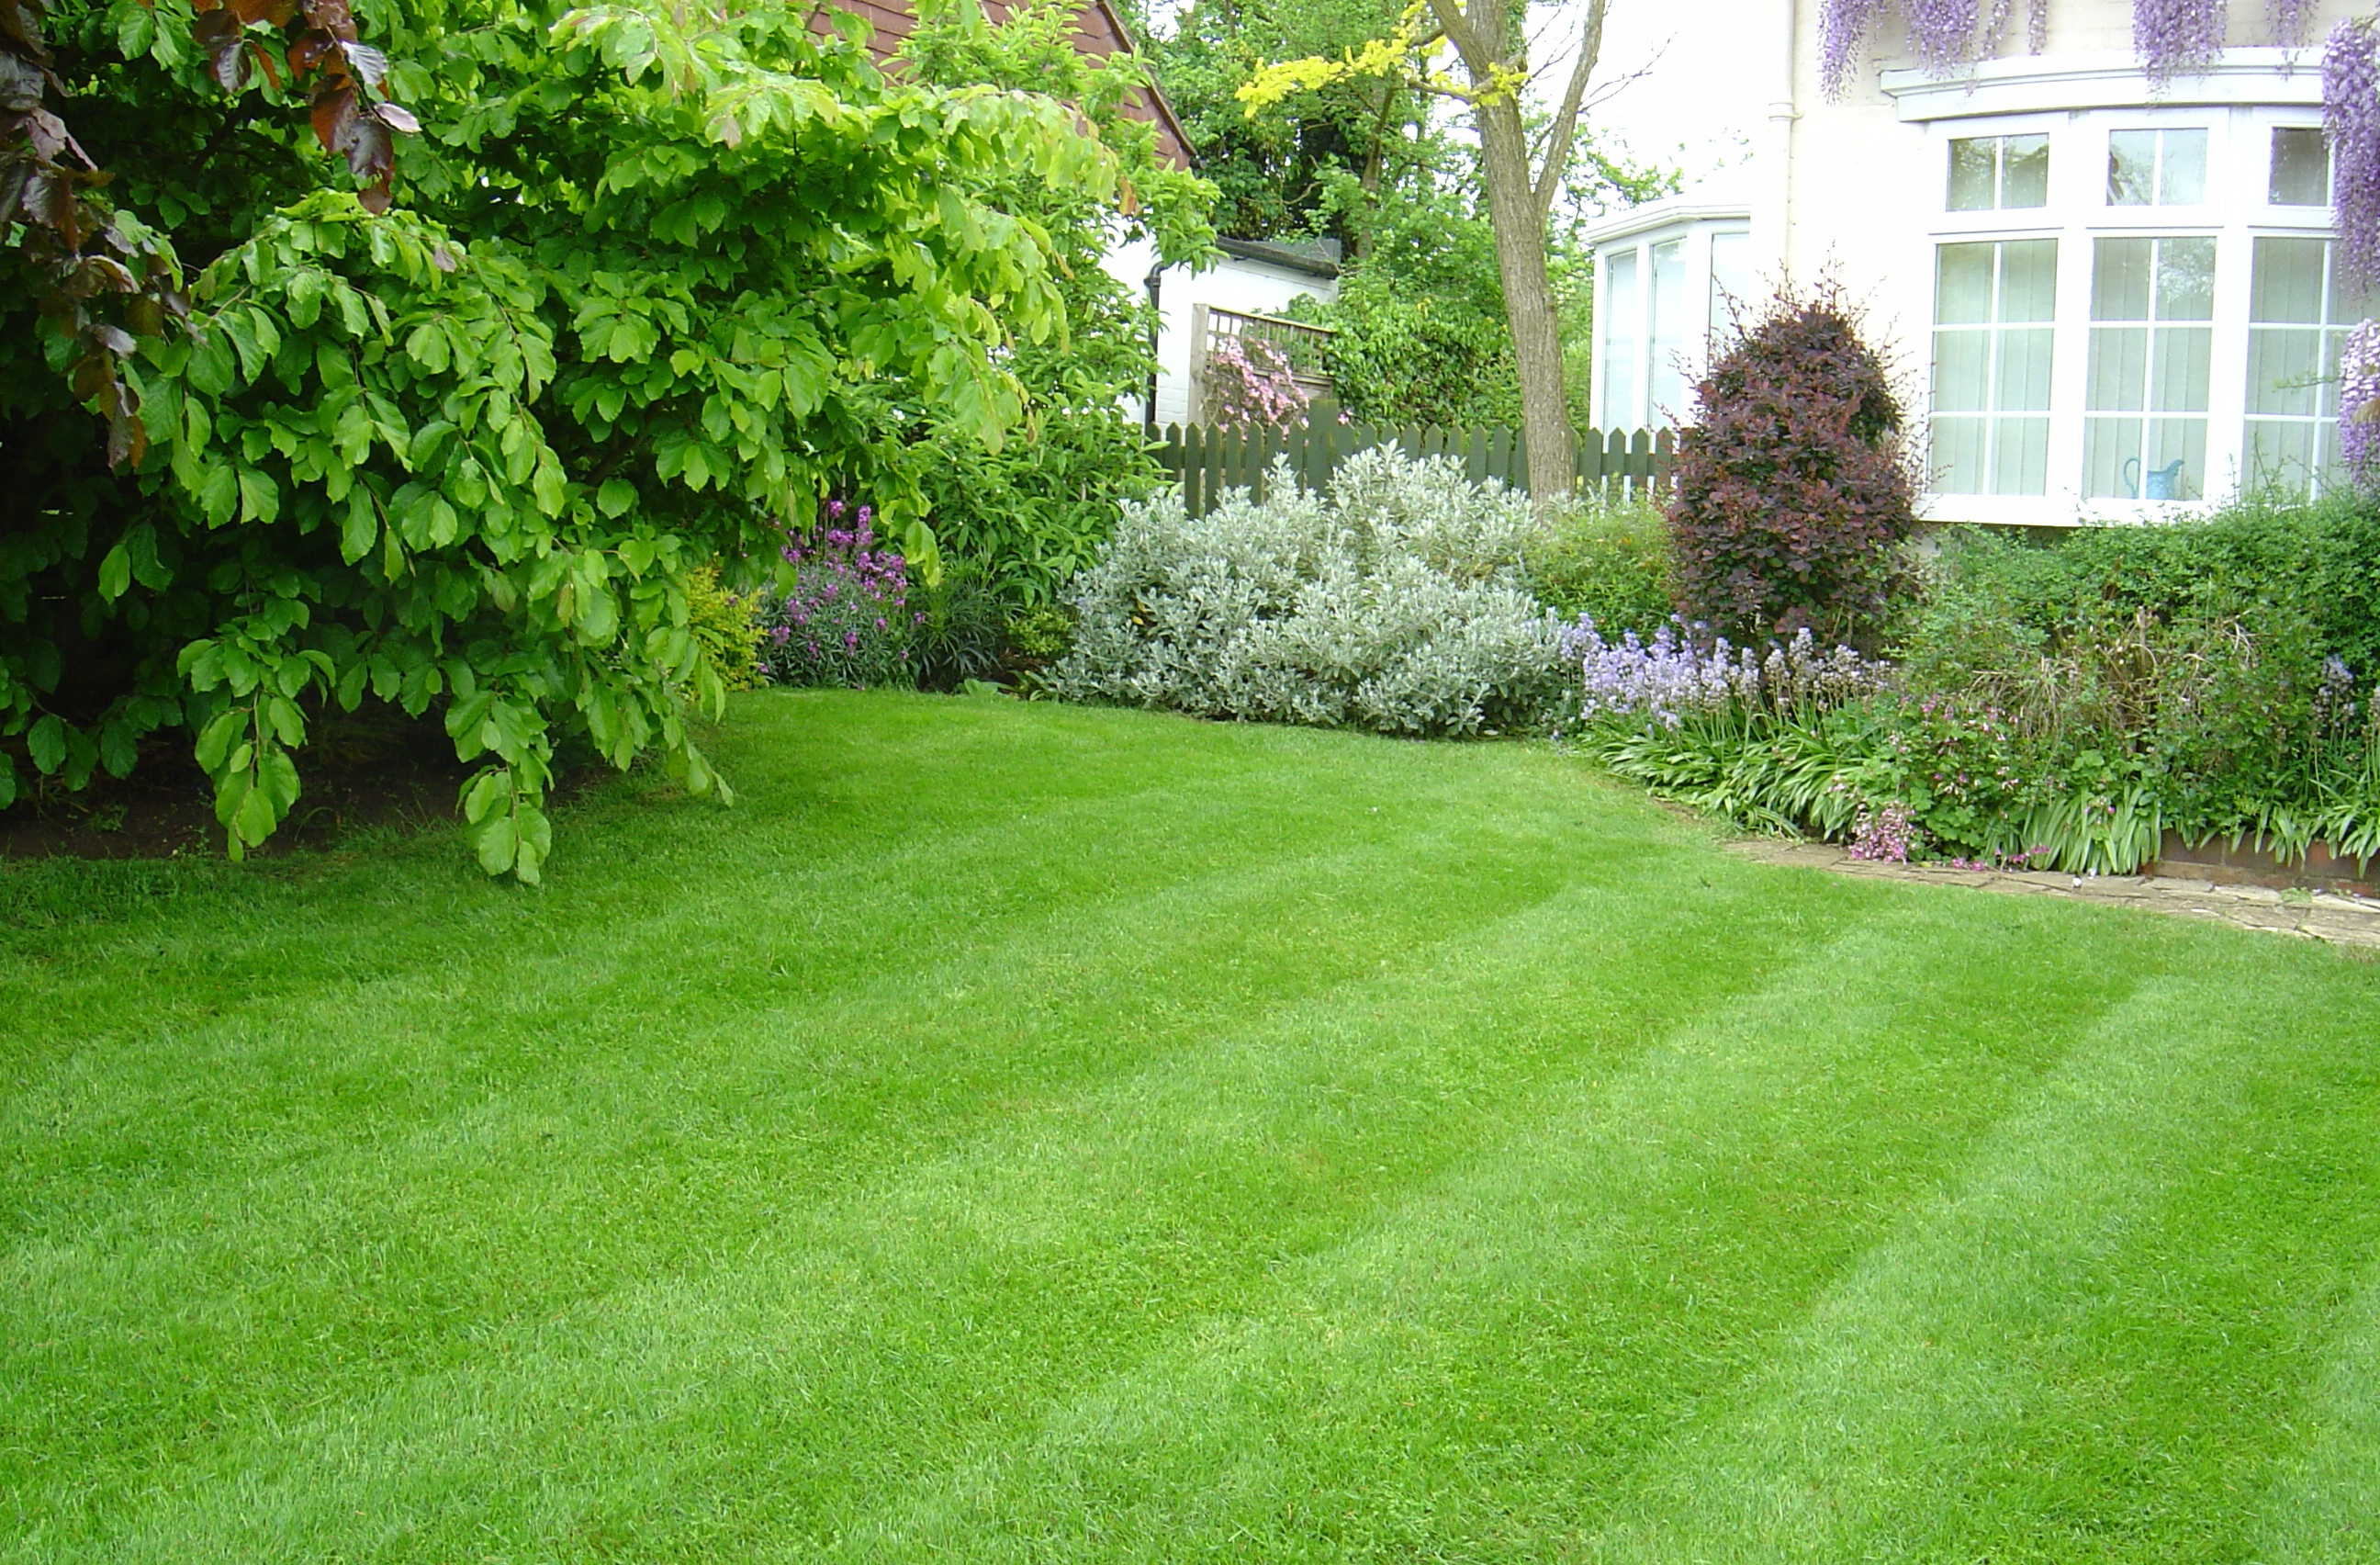 Lawn care vertopia gardens for Outdoor garden